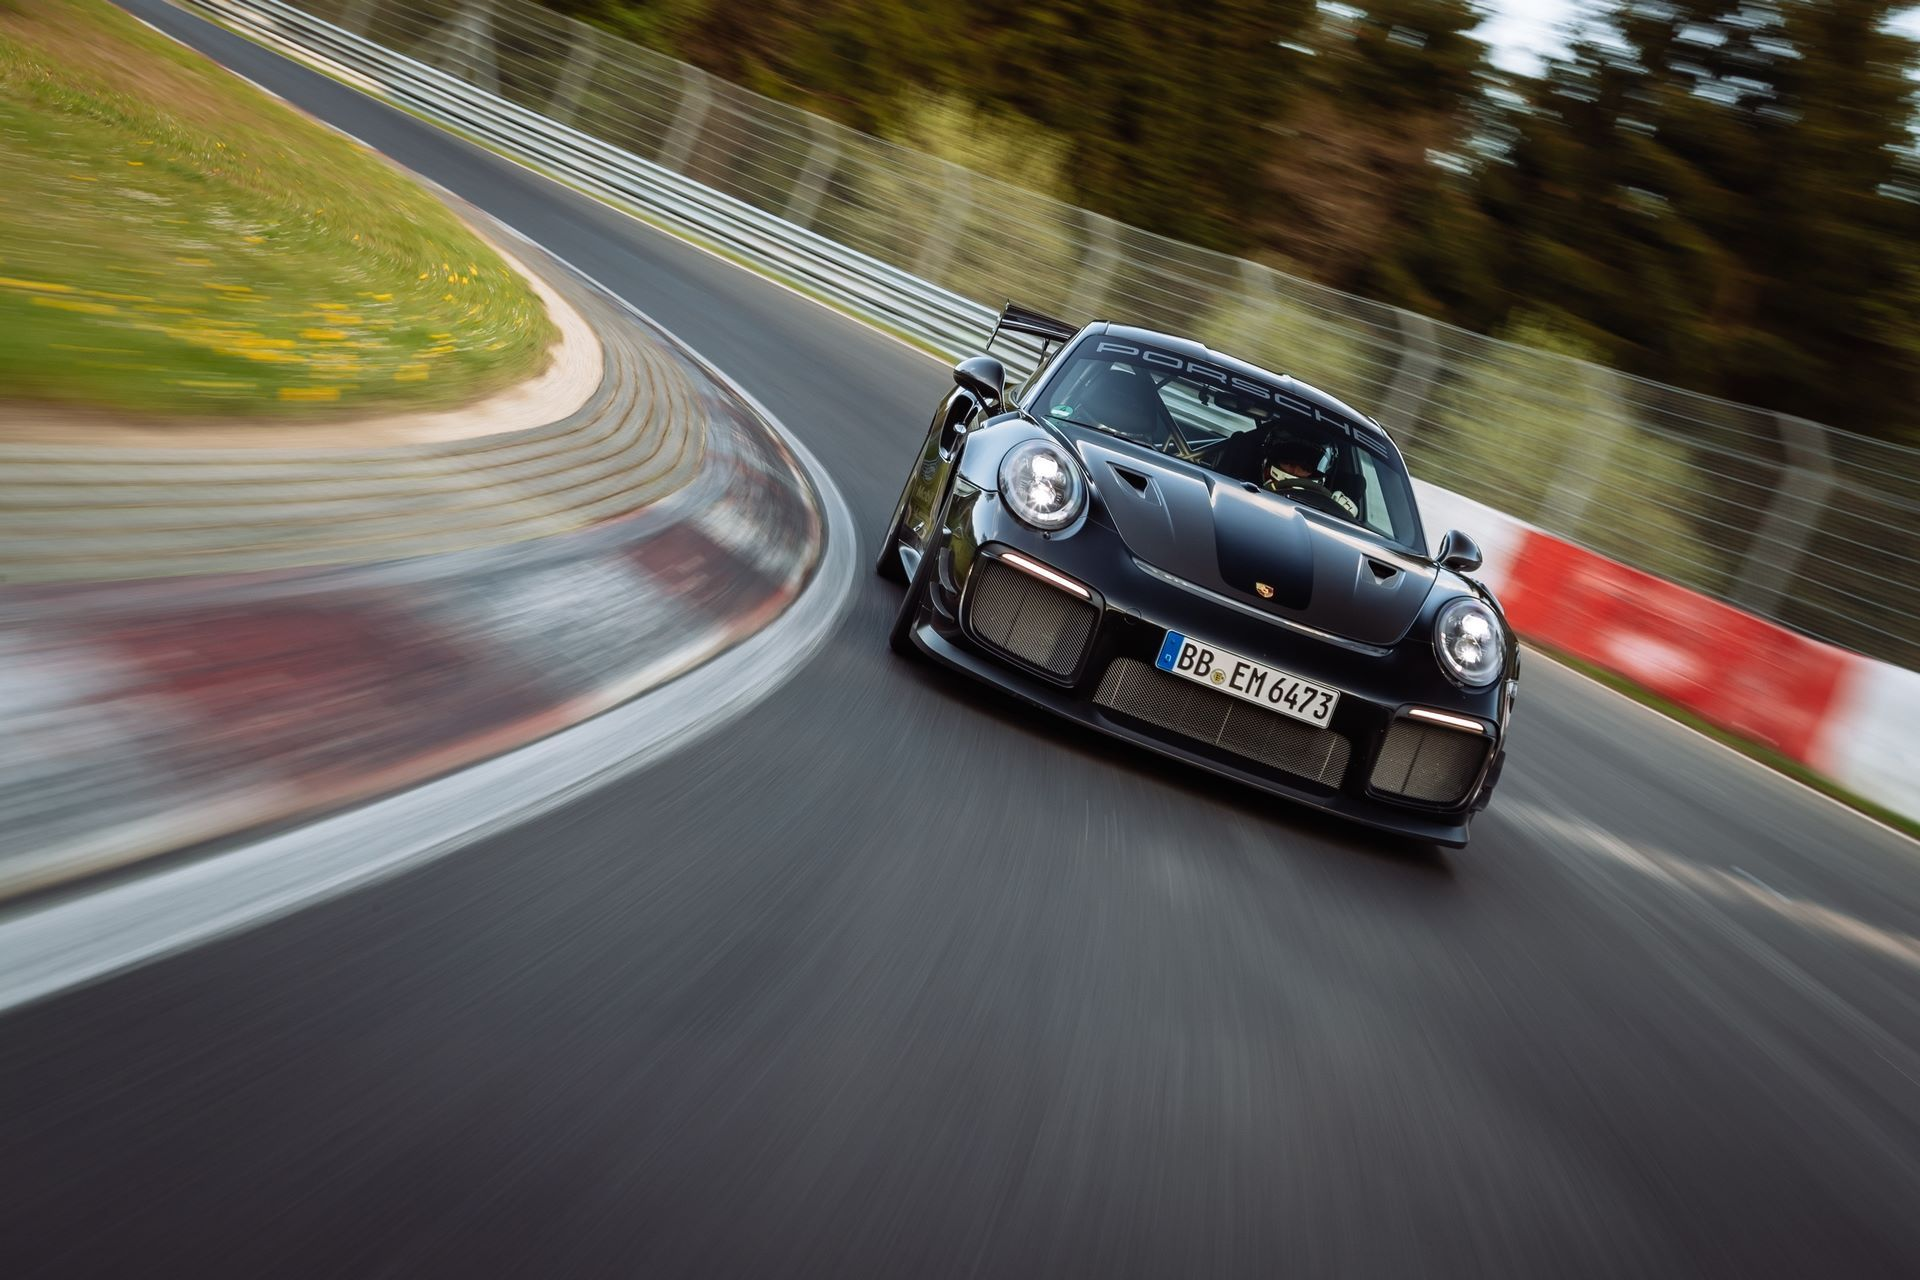 Porsche-911-GT2-RS-Manthey-Performance-Kit-Nurburgring-Record-5